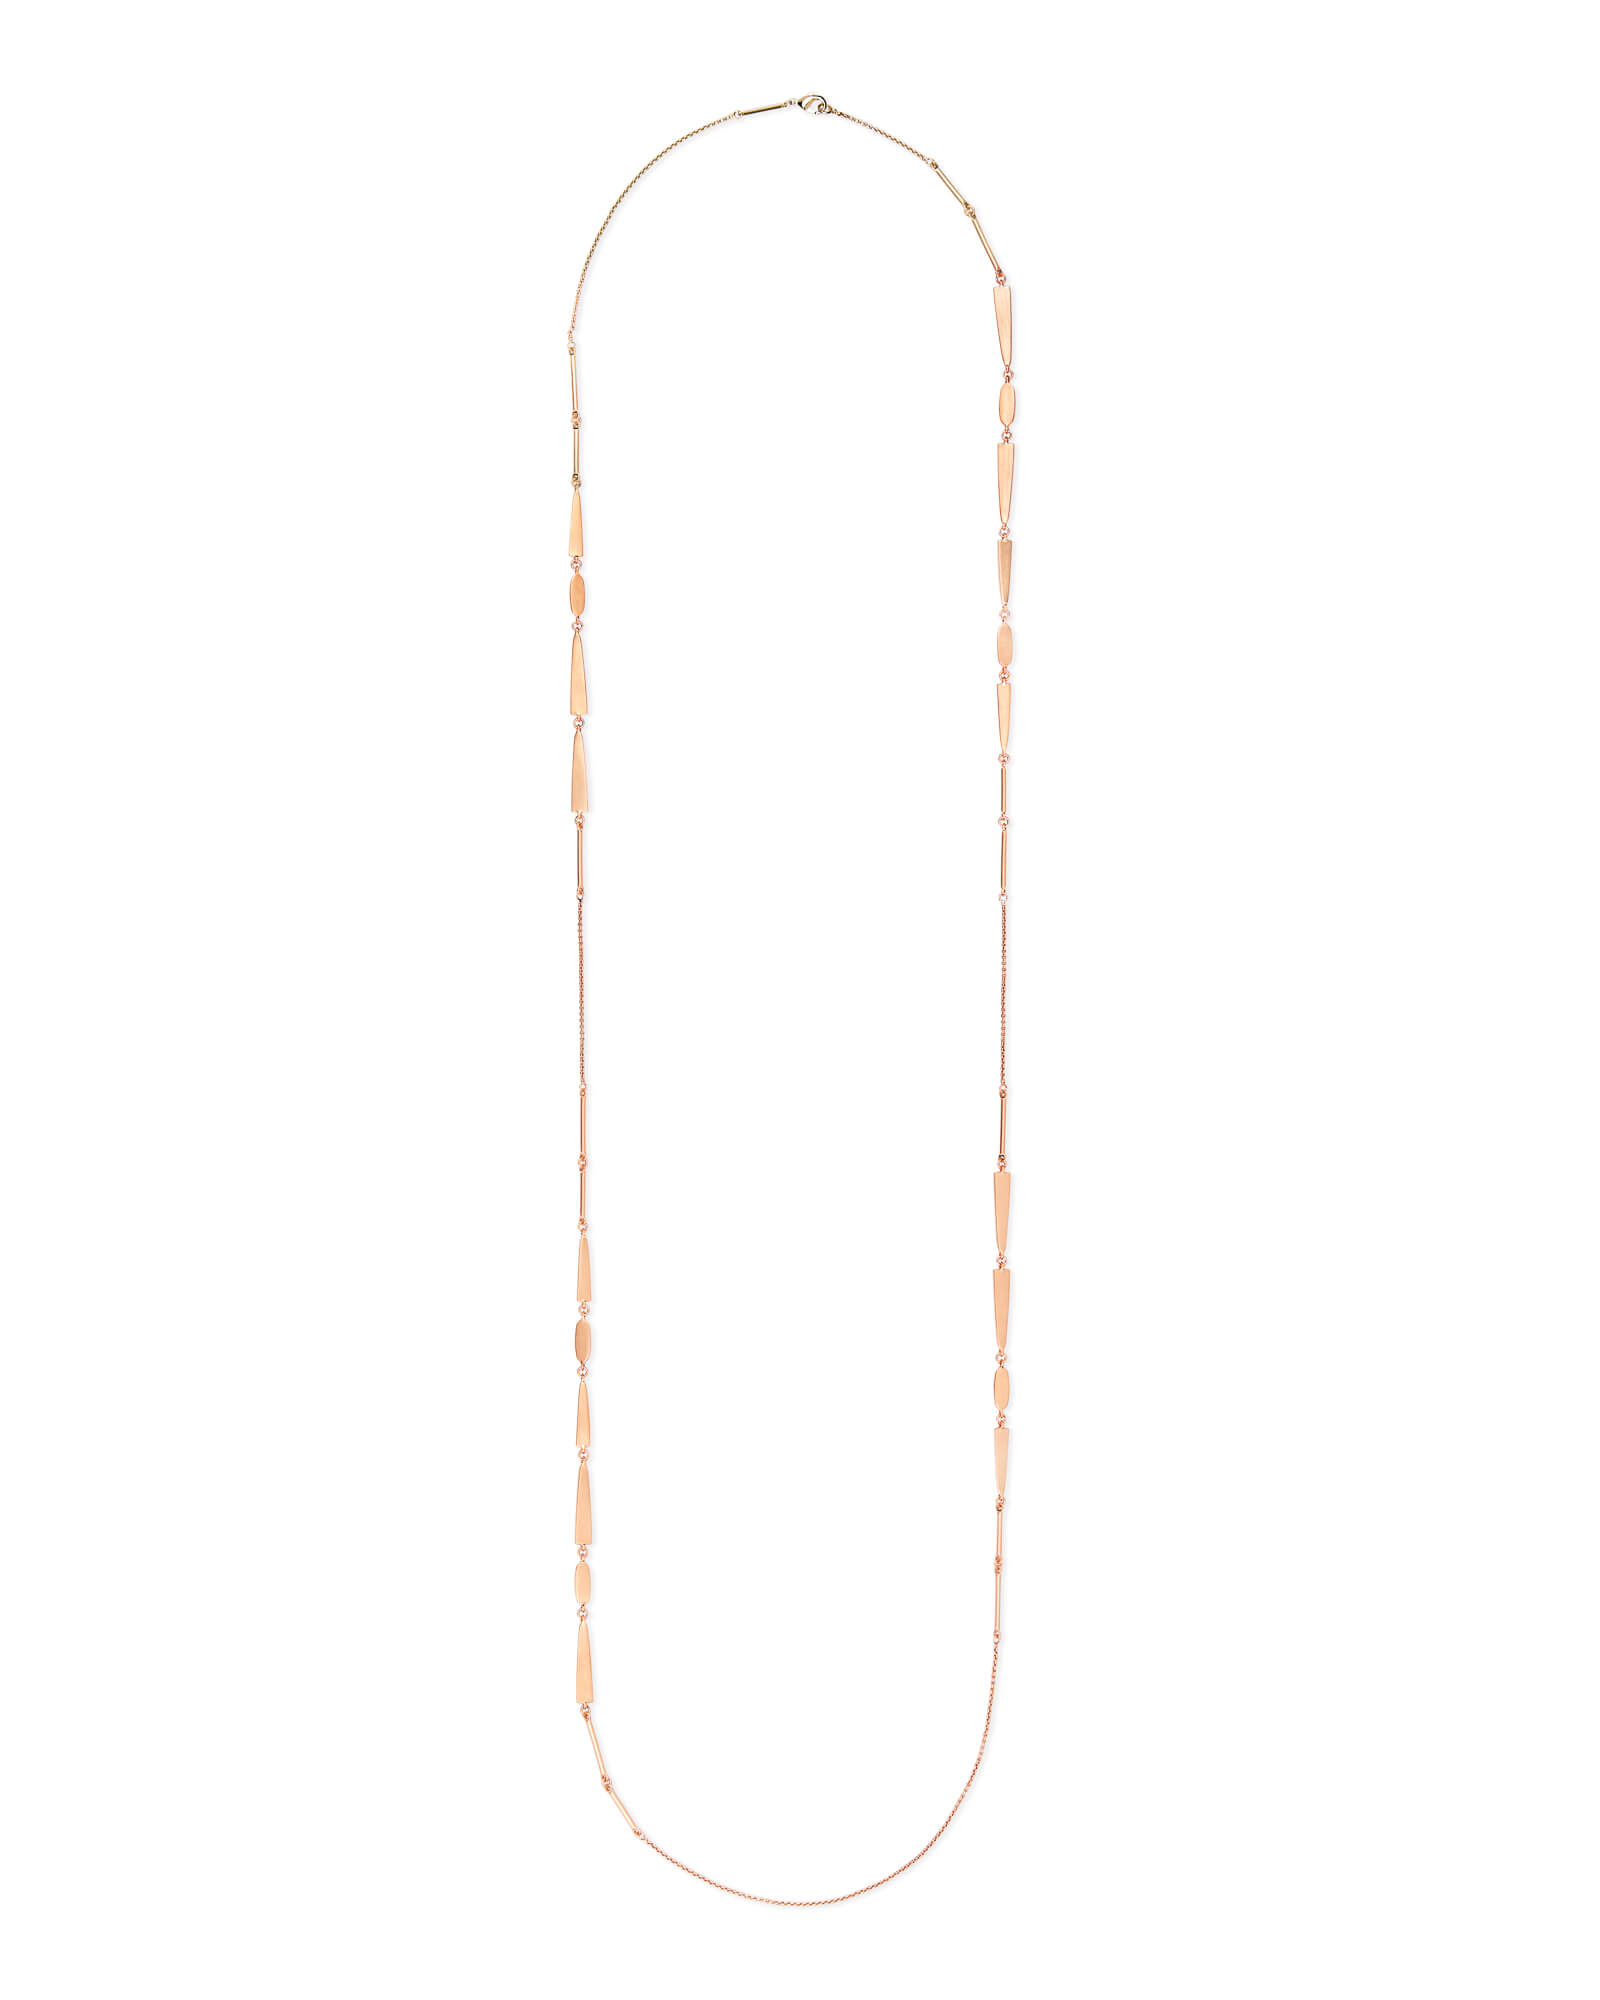 Averil Long Necklace in Rose Gold